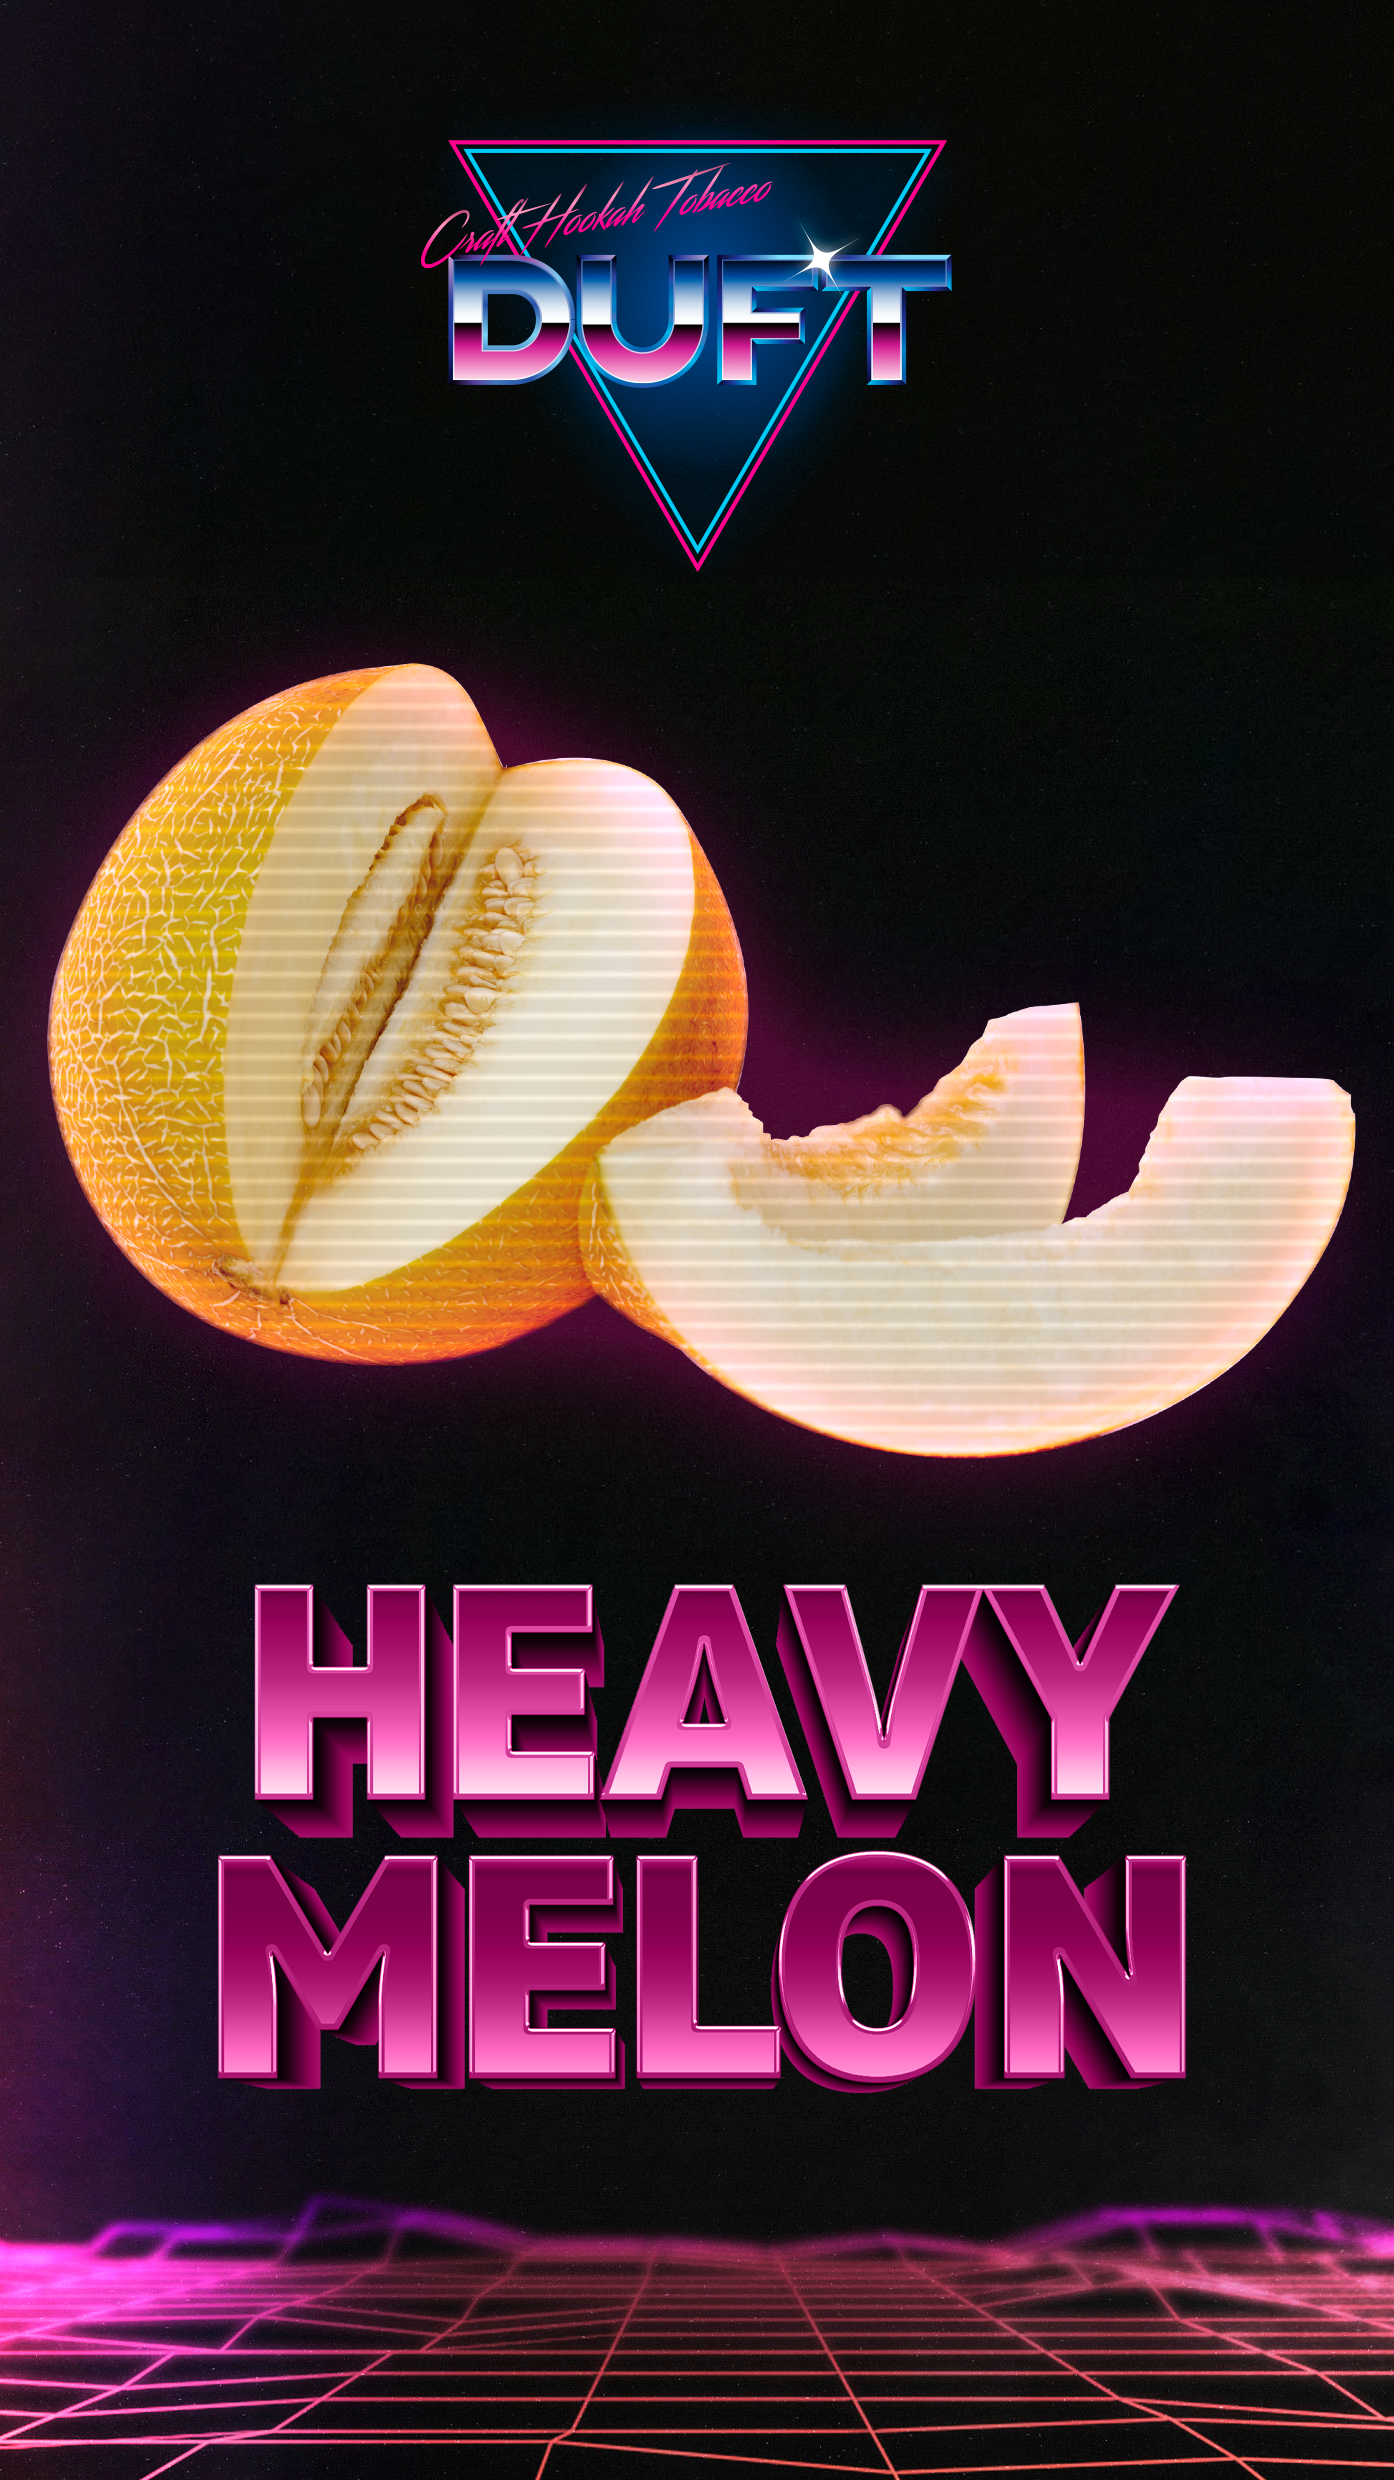 HEAVY MELON